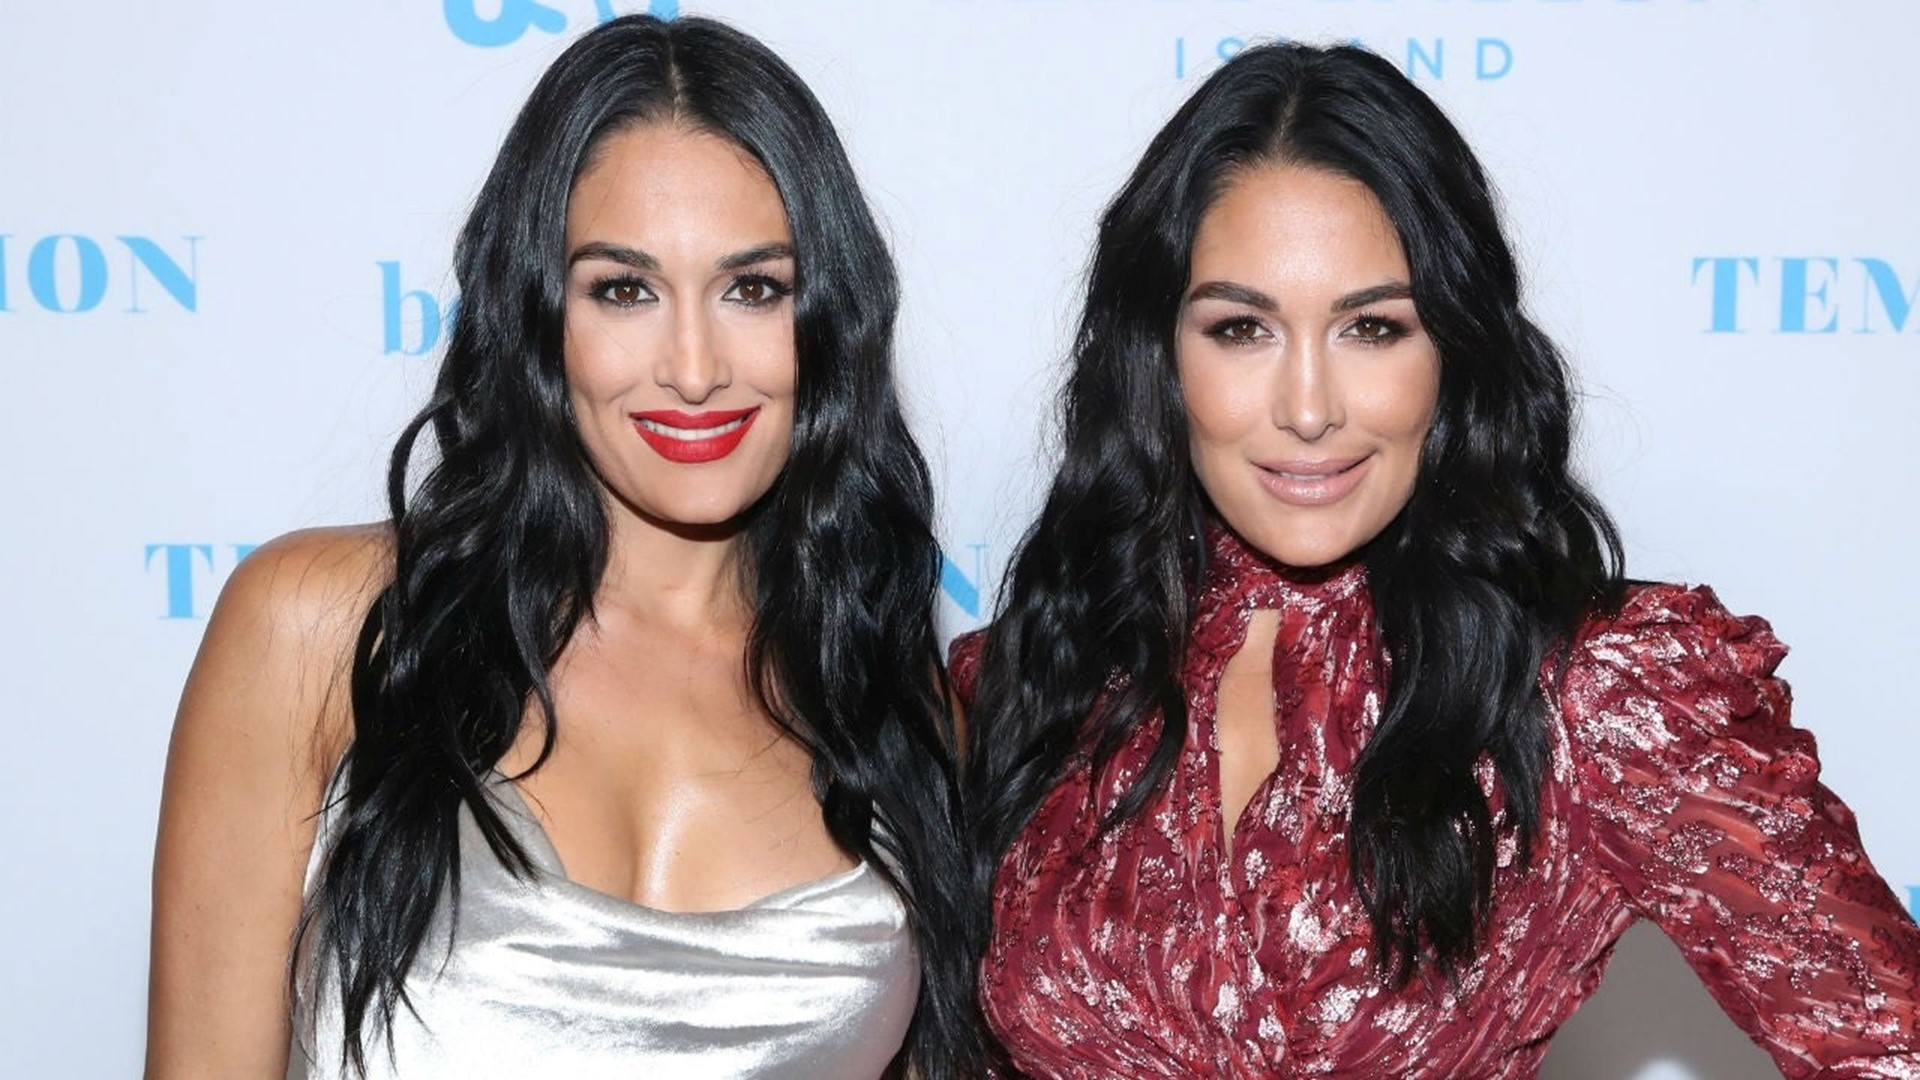 Nikki And Brie Bella Go Nude For Joint Pregnancy Shoot